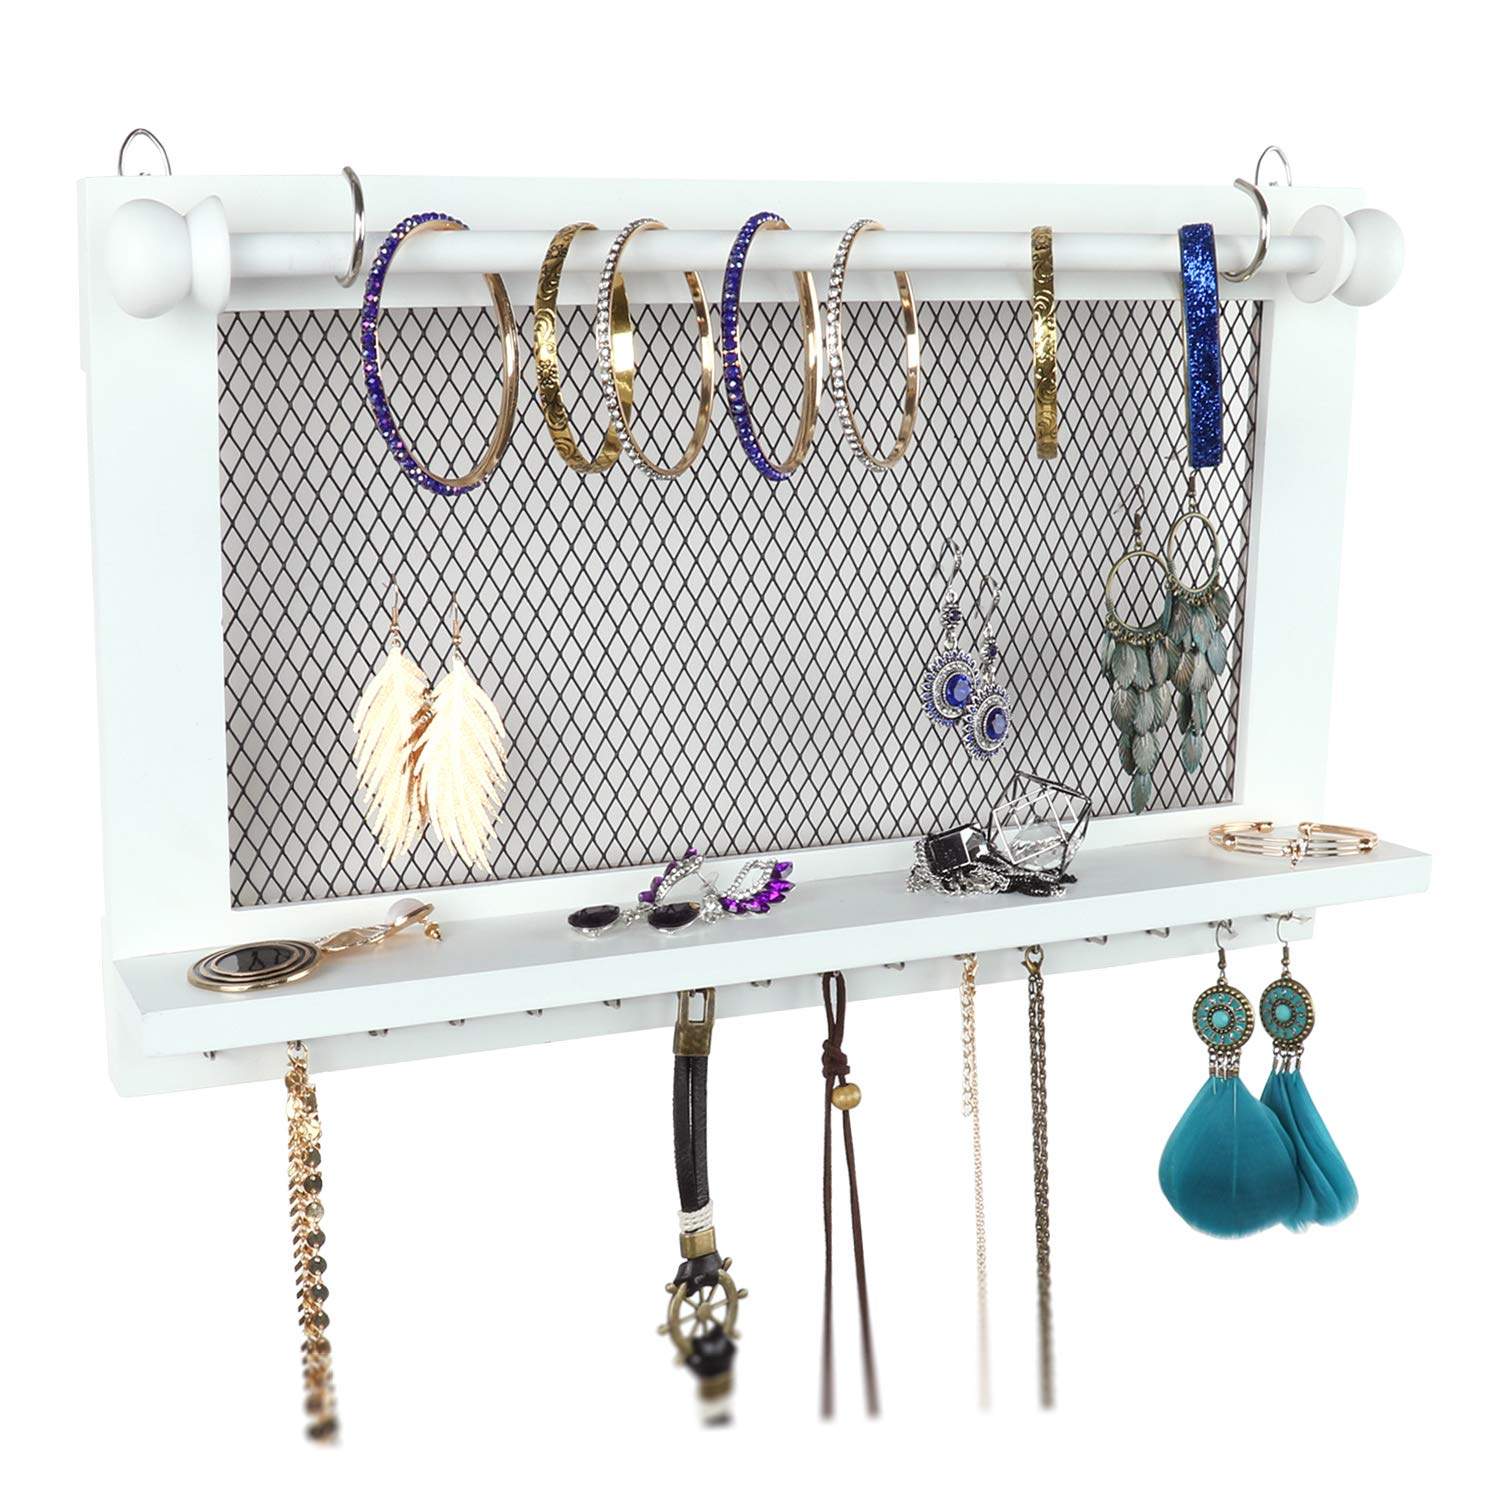 Caroeas Jewelry Organizer, Jewelry Holder Wall Mounted with Removable Bracelet Rod Wooden Jewelry Organizer with Silver Hooks for Necklaces/Earrings/Keys/Accessories (White)